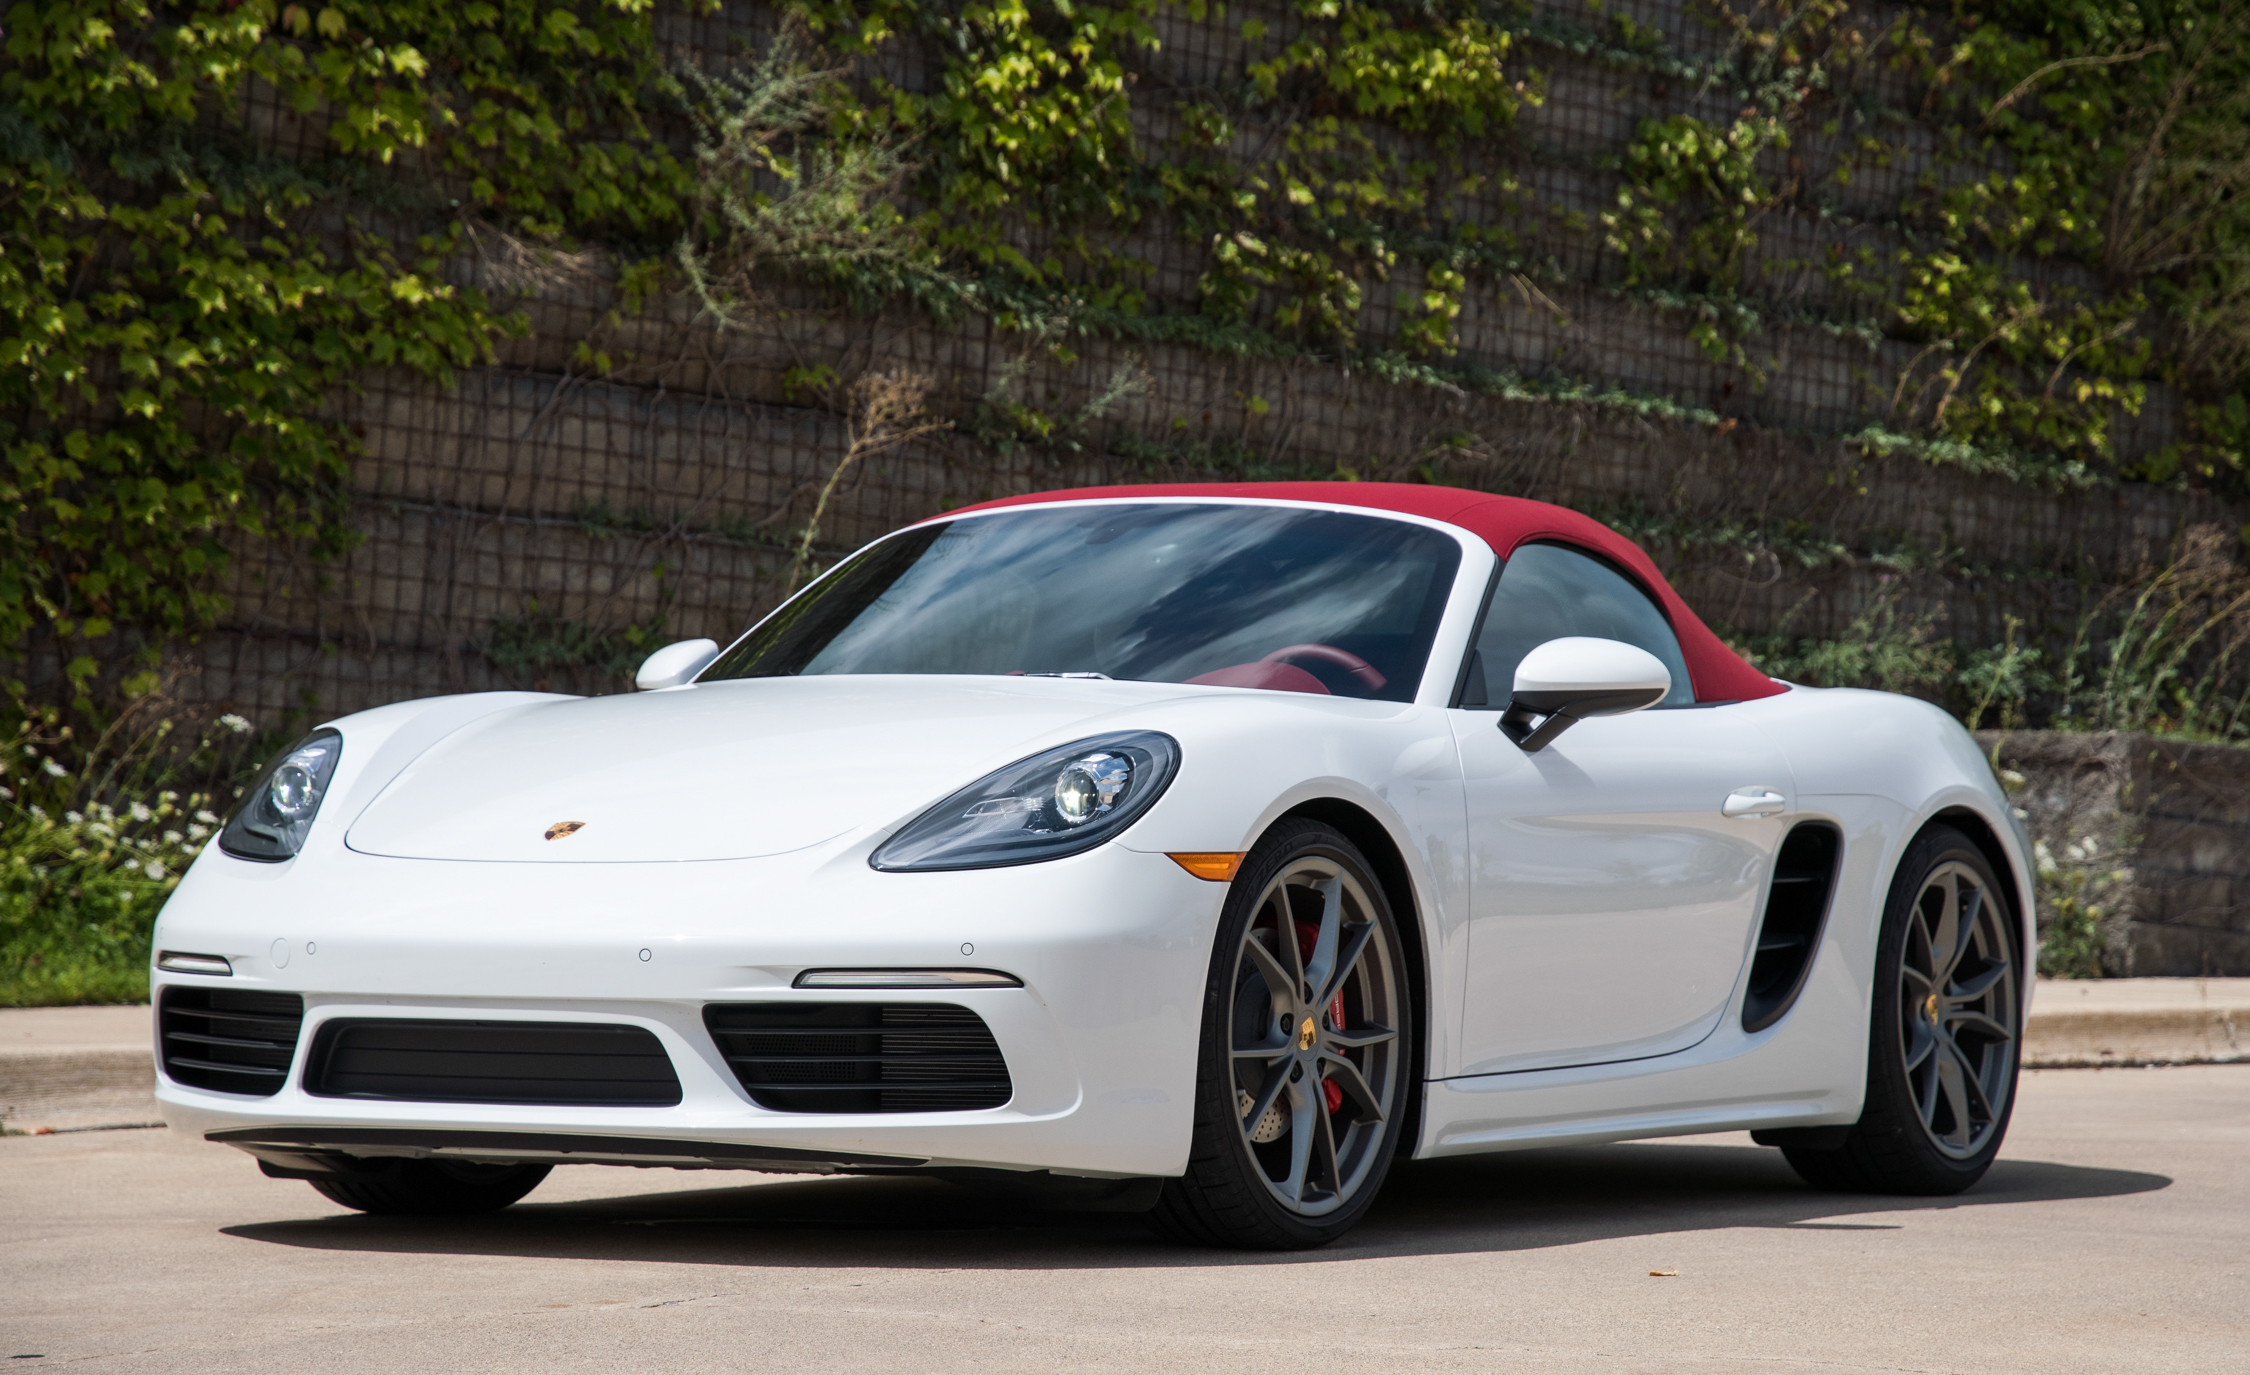 2017 Porsche 718 Boxster (View 58 of 71)